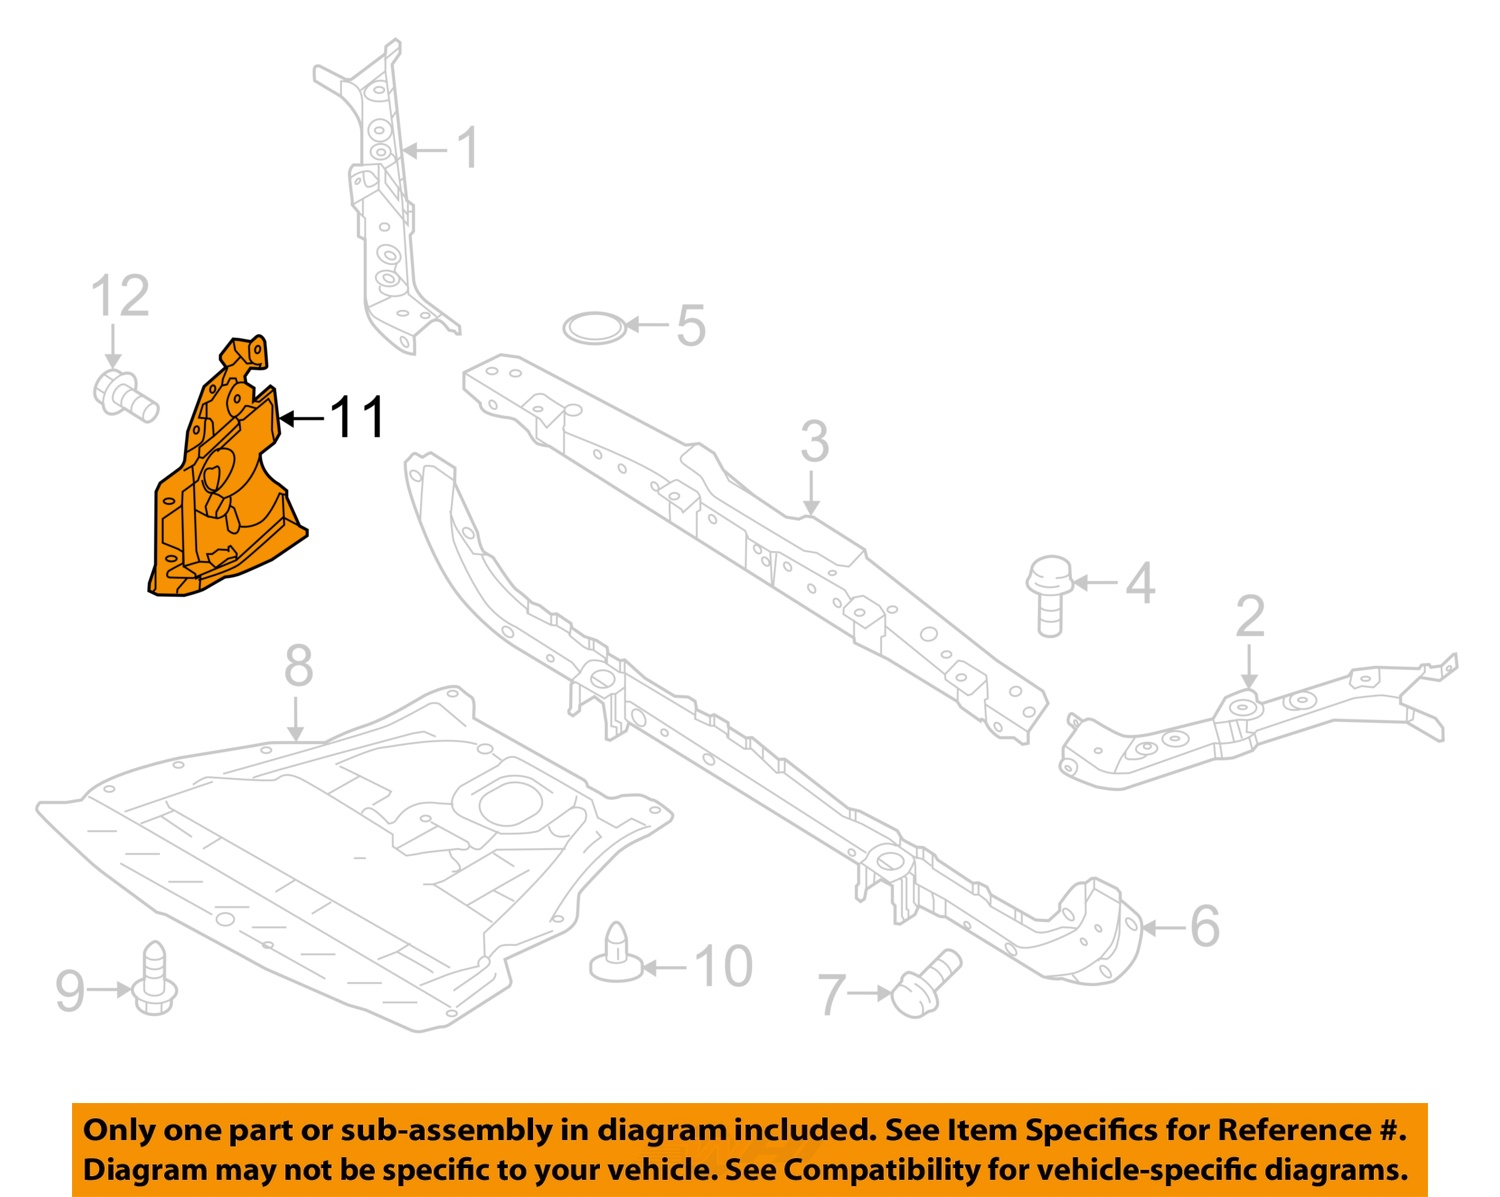 NEW RADIATOR SUPPORT UPPER CENTER TIE BAR FITS 14-17 NISSAN ROGUE 625114BC0A